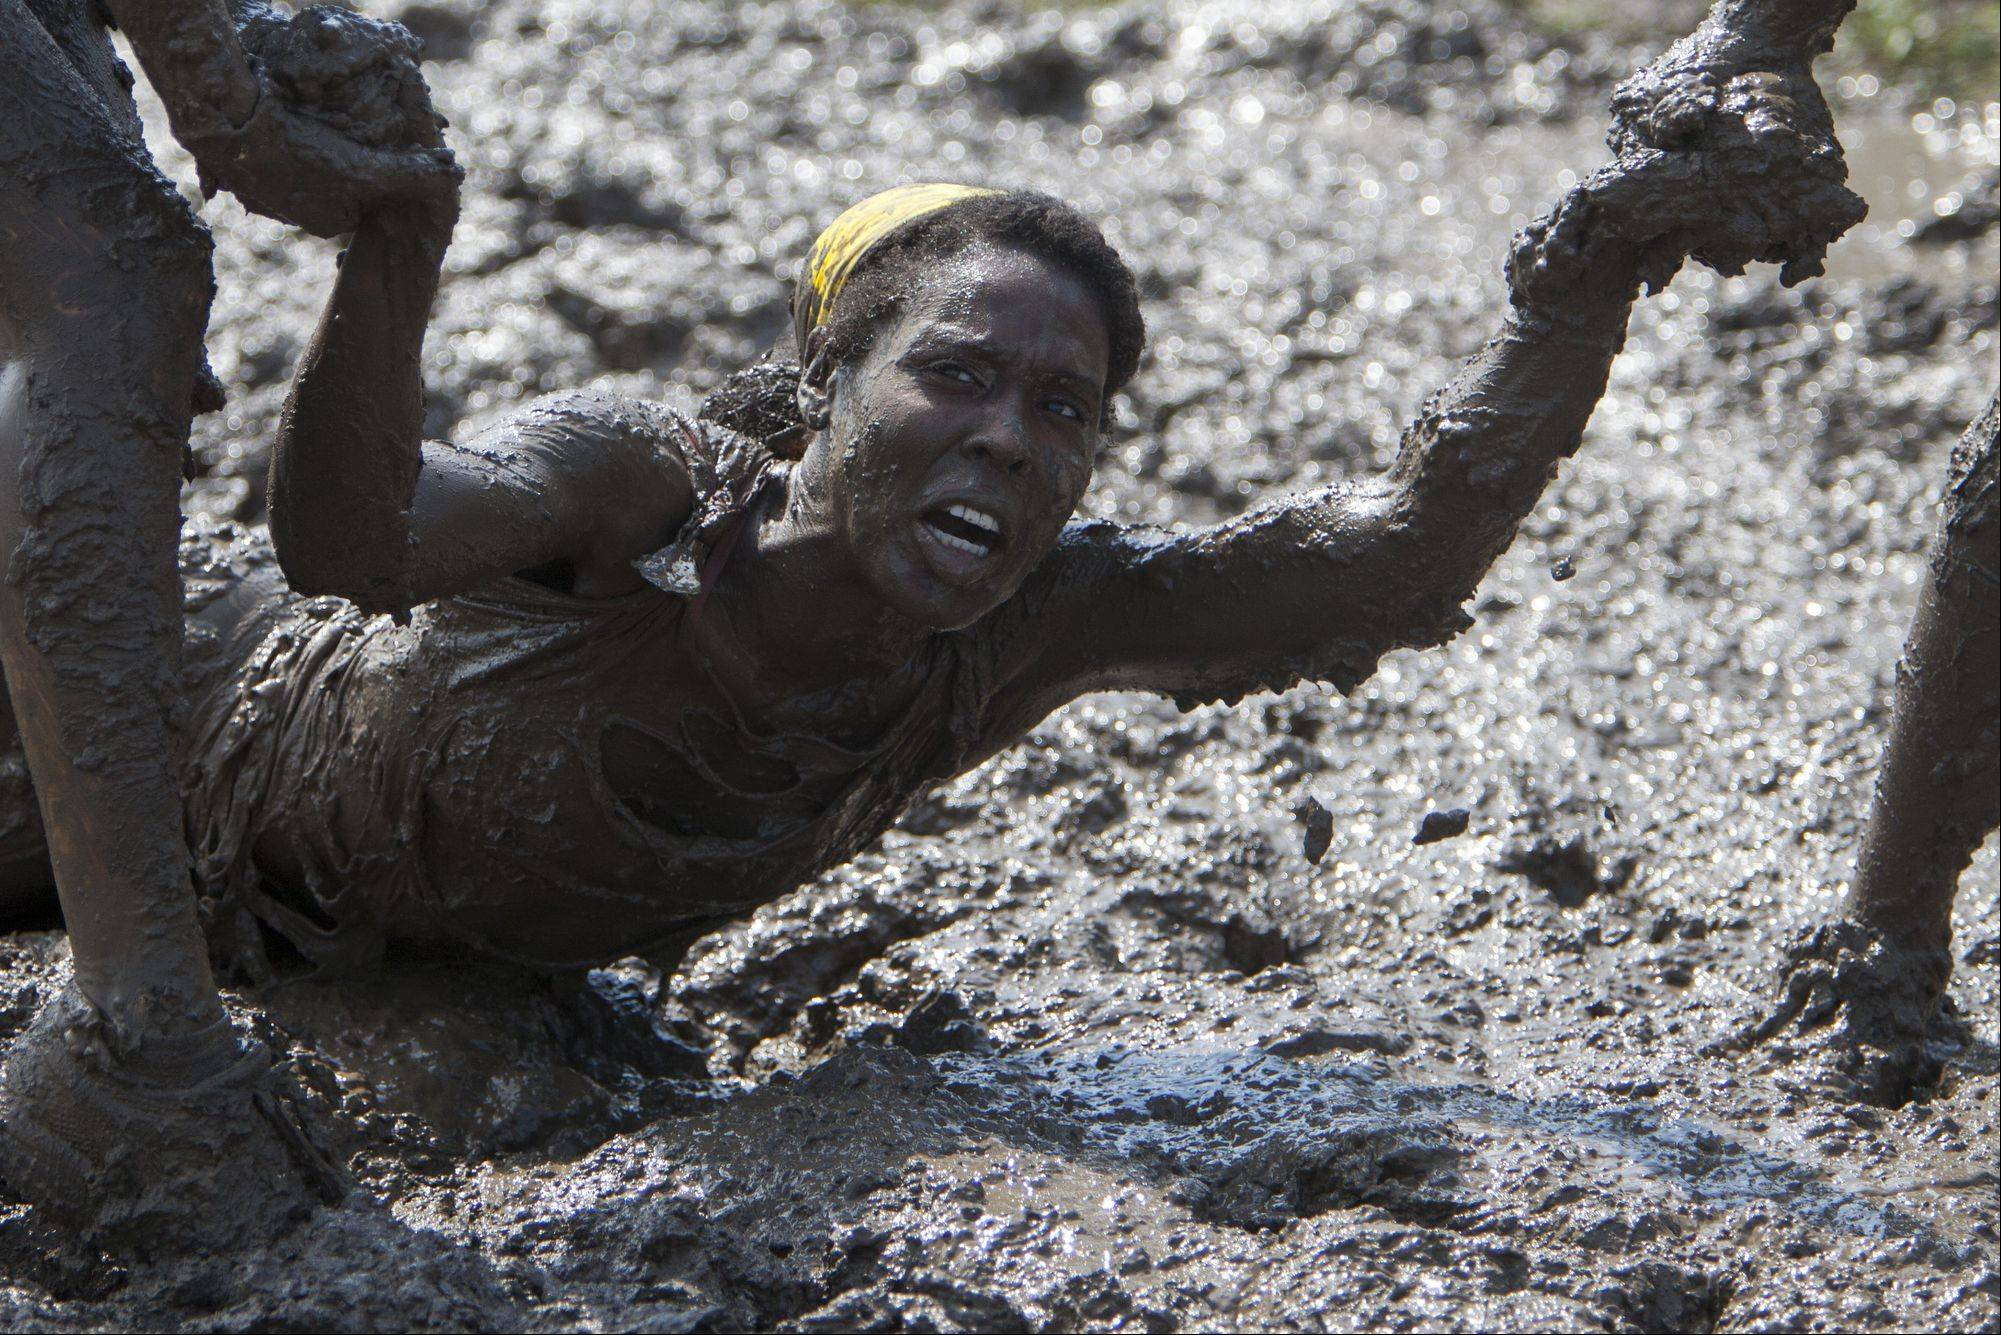 Joel Bissell/jbissell@dailyherald.comJoniqia Howard of Puerto Rico is helped out of the mud by two of her teammates during the Dirty Girl Mud Run on Saturday.